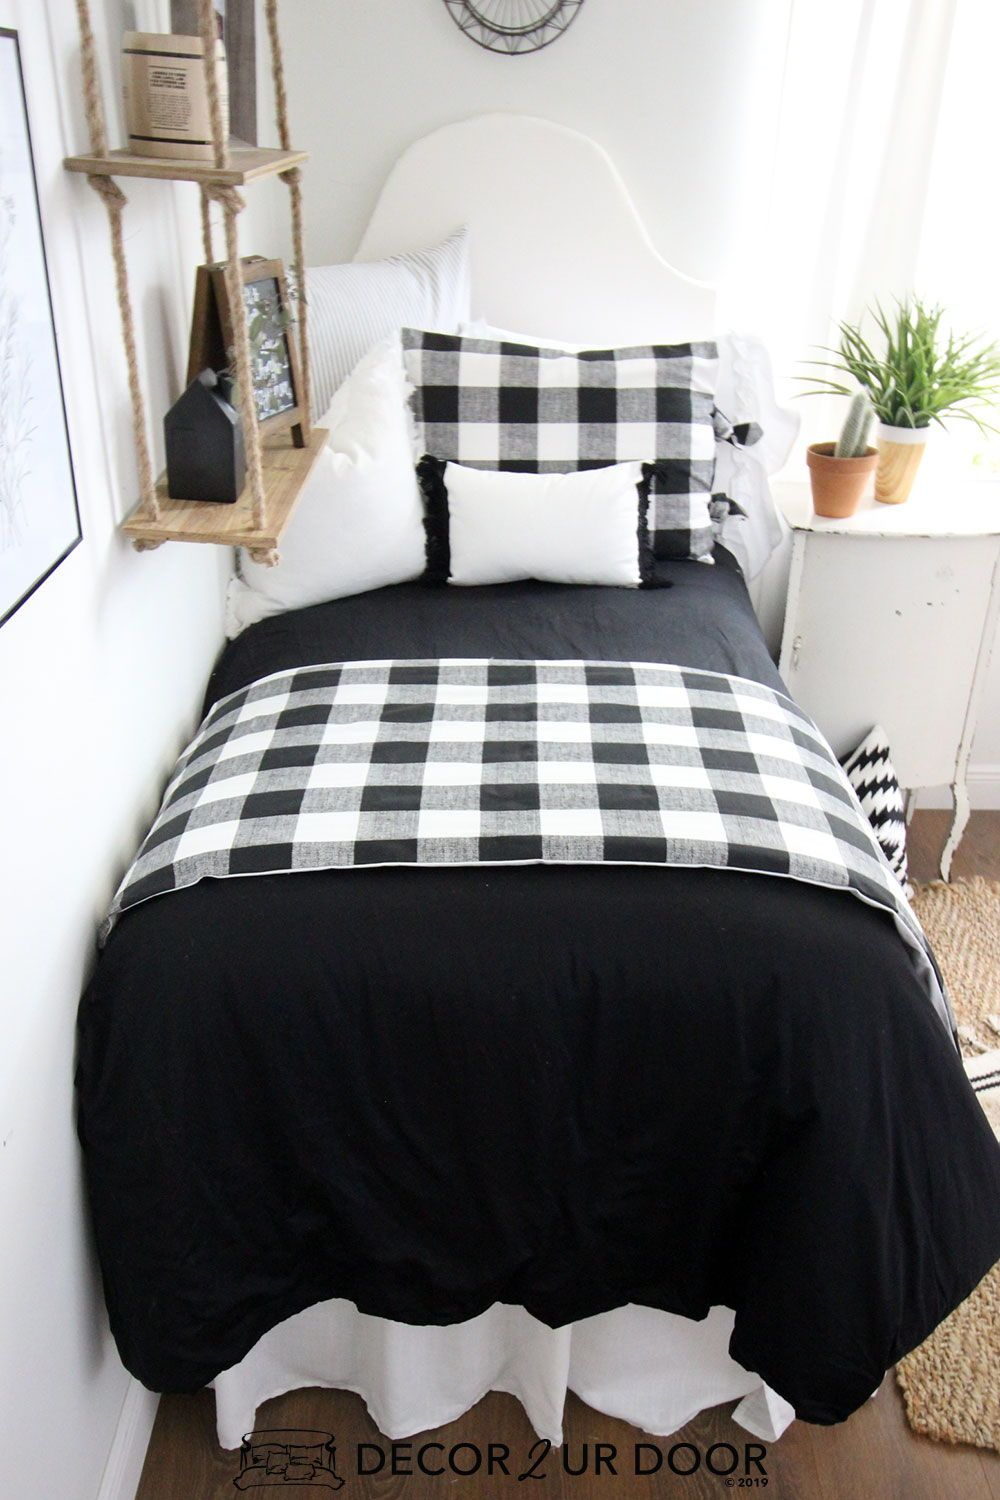 Farmhouse Black White Gingham Dorm Bedding Set #collegedormroomideas